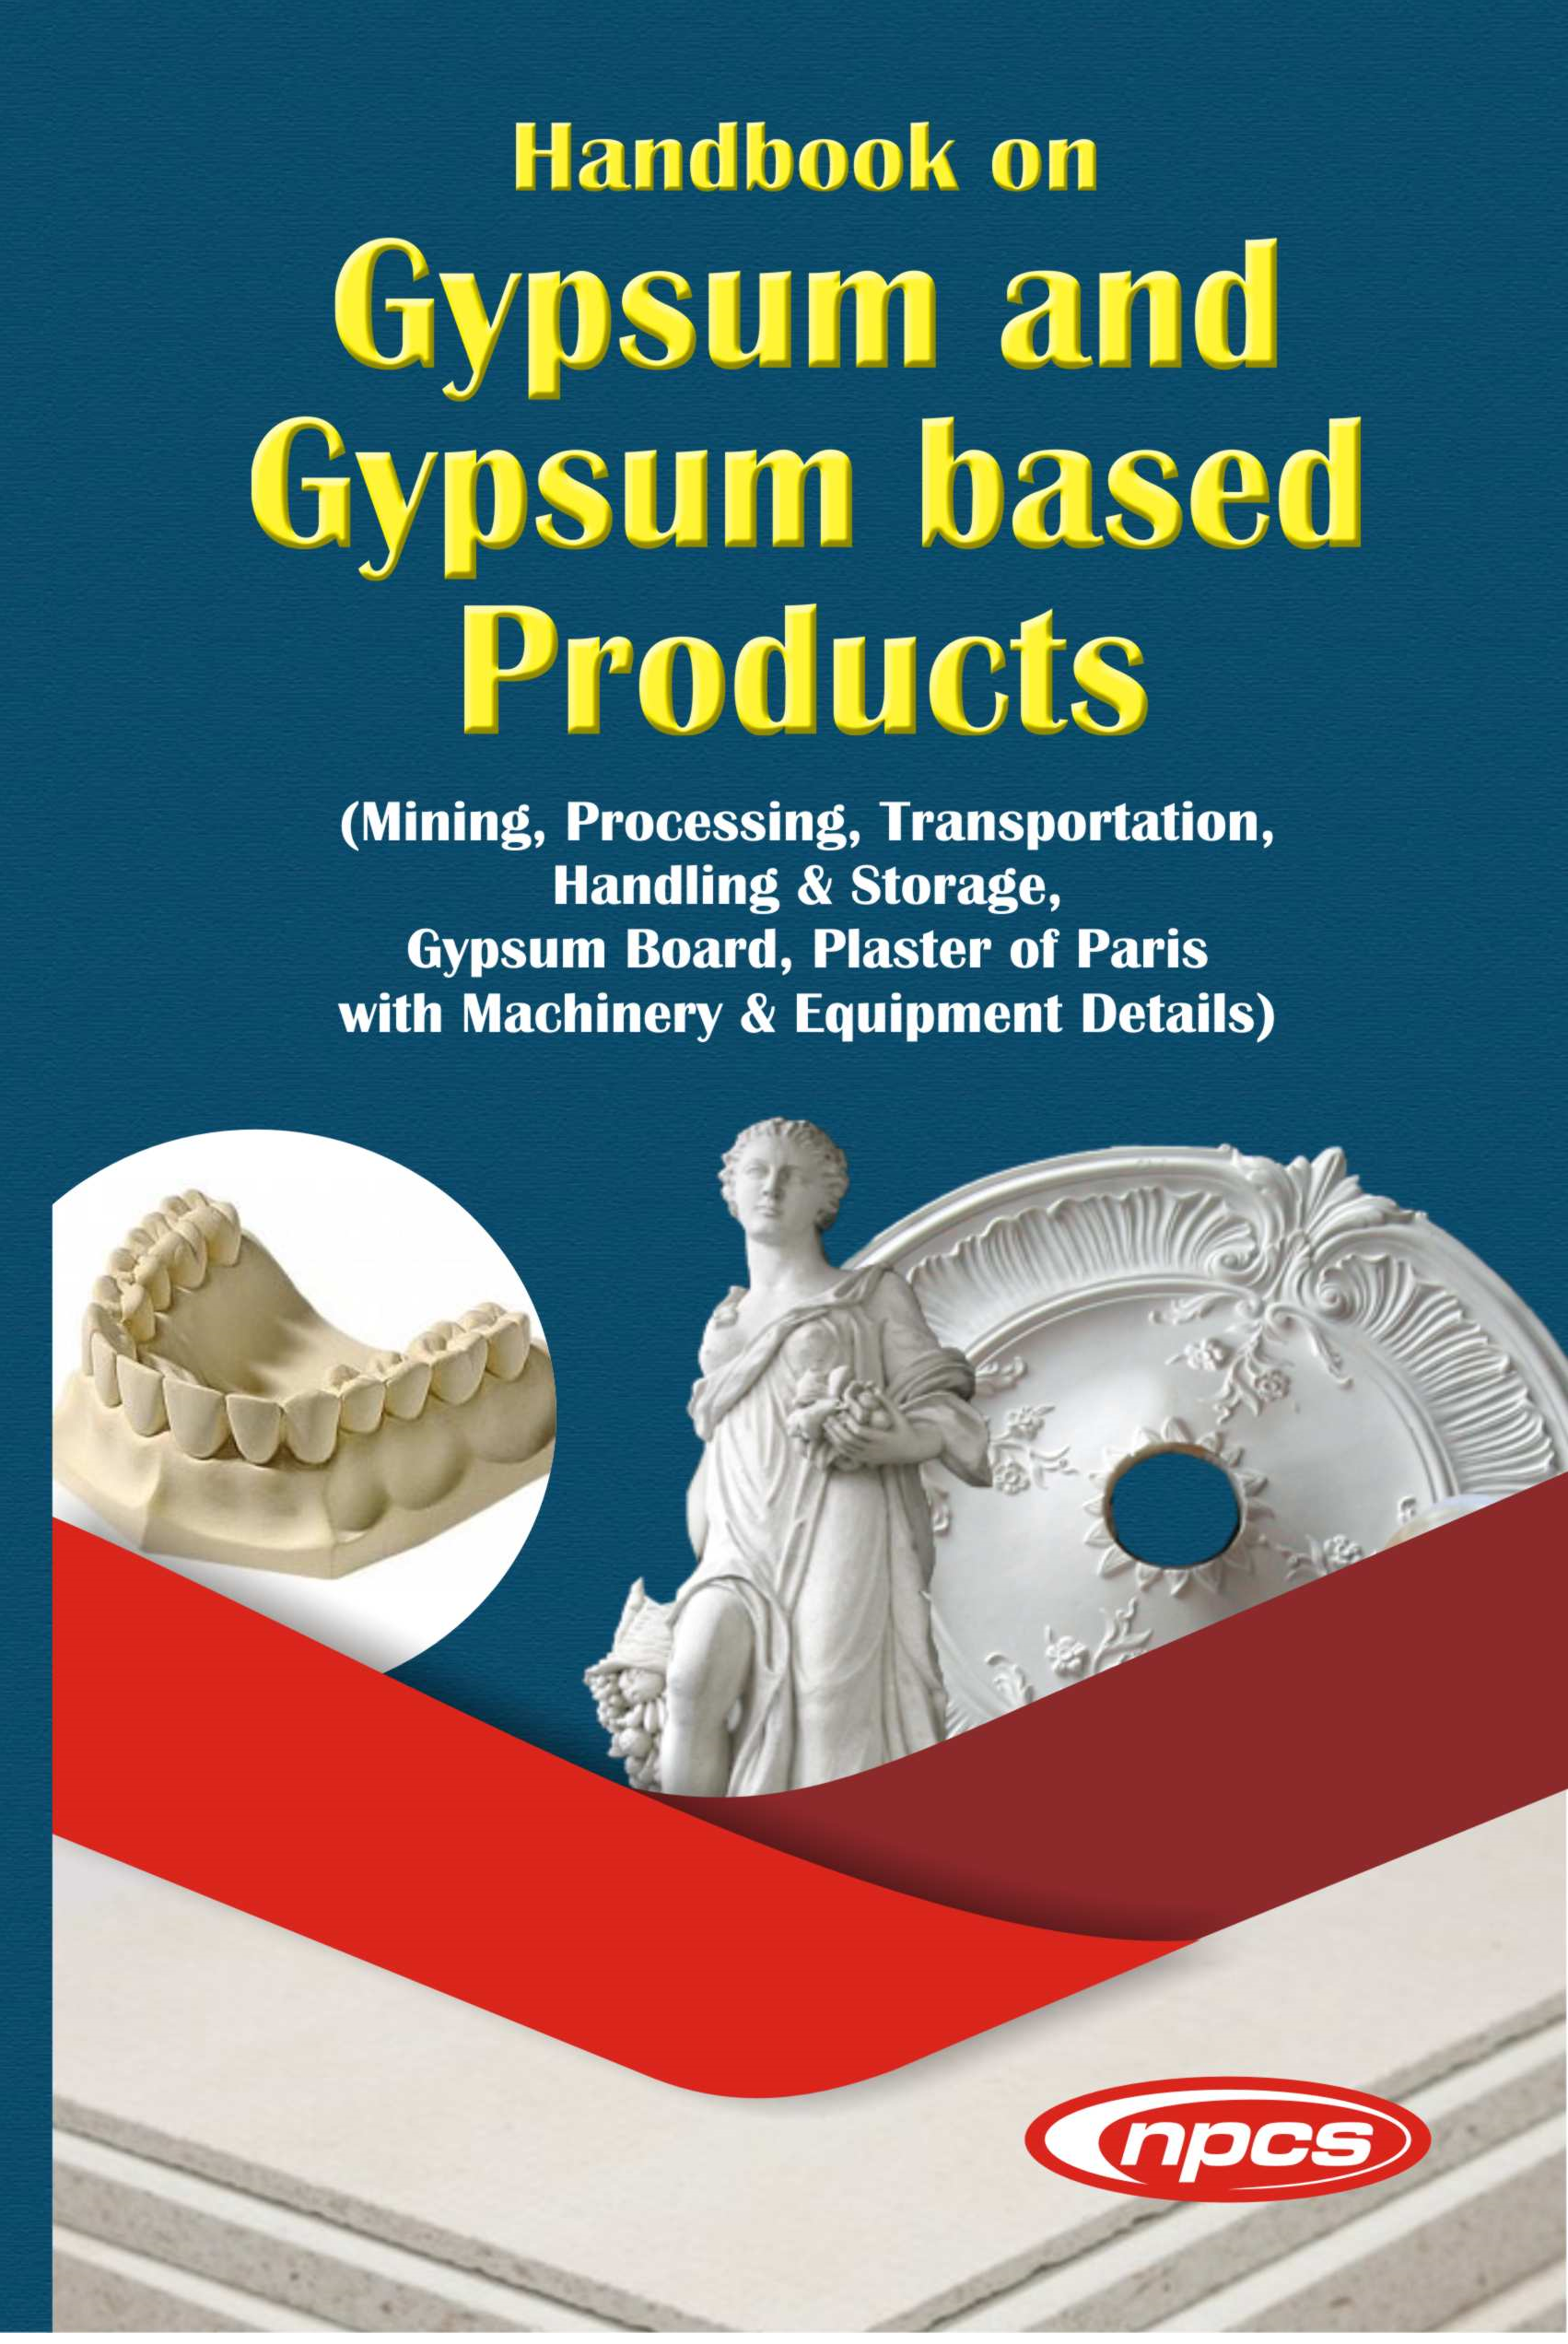 Handbook on Gypsum and Gypsum Based Products (Mining, Processing, Transportation, Handling & Storage, Gypsum Board,  Plaster of Paris with Machinery & Equipment Details)